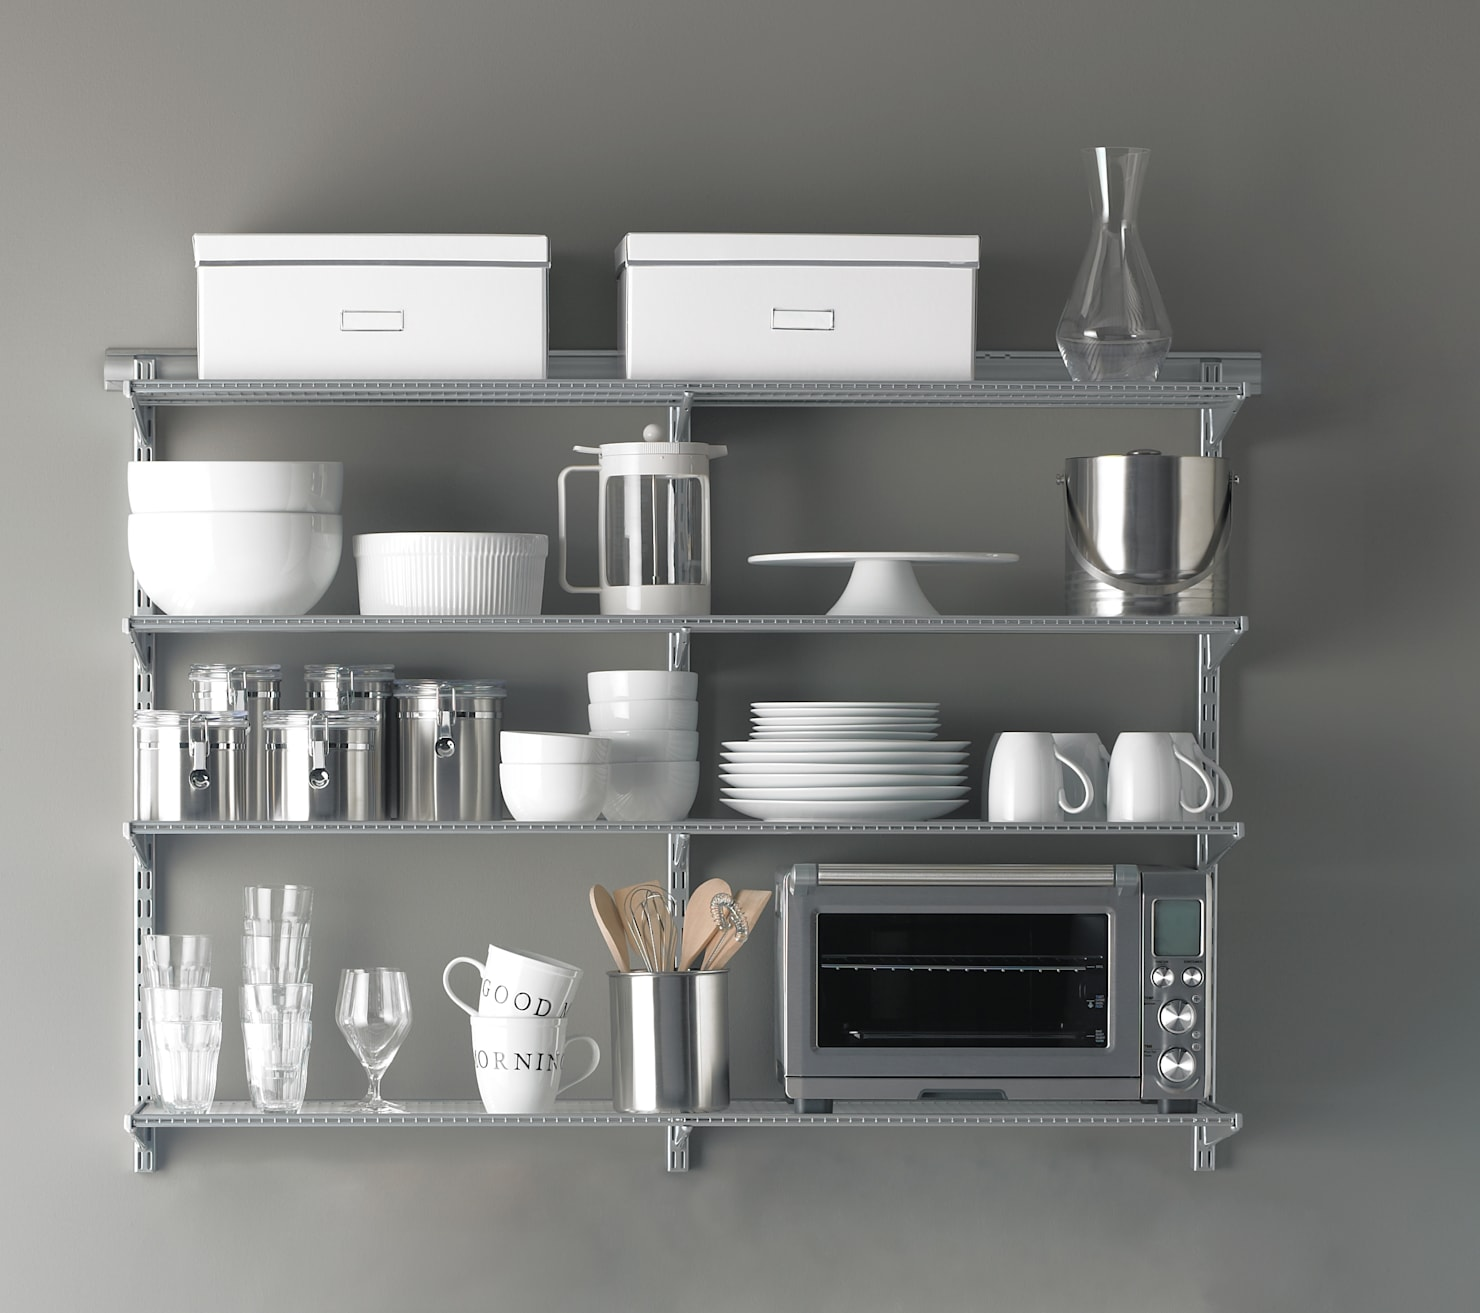 Home improvement: 10 ways to build your own shelves